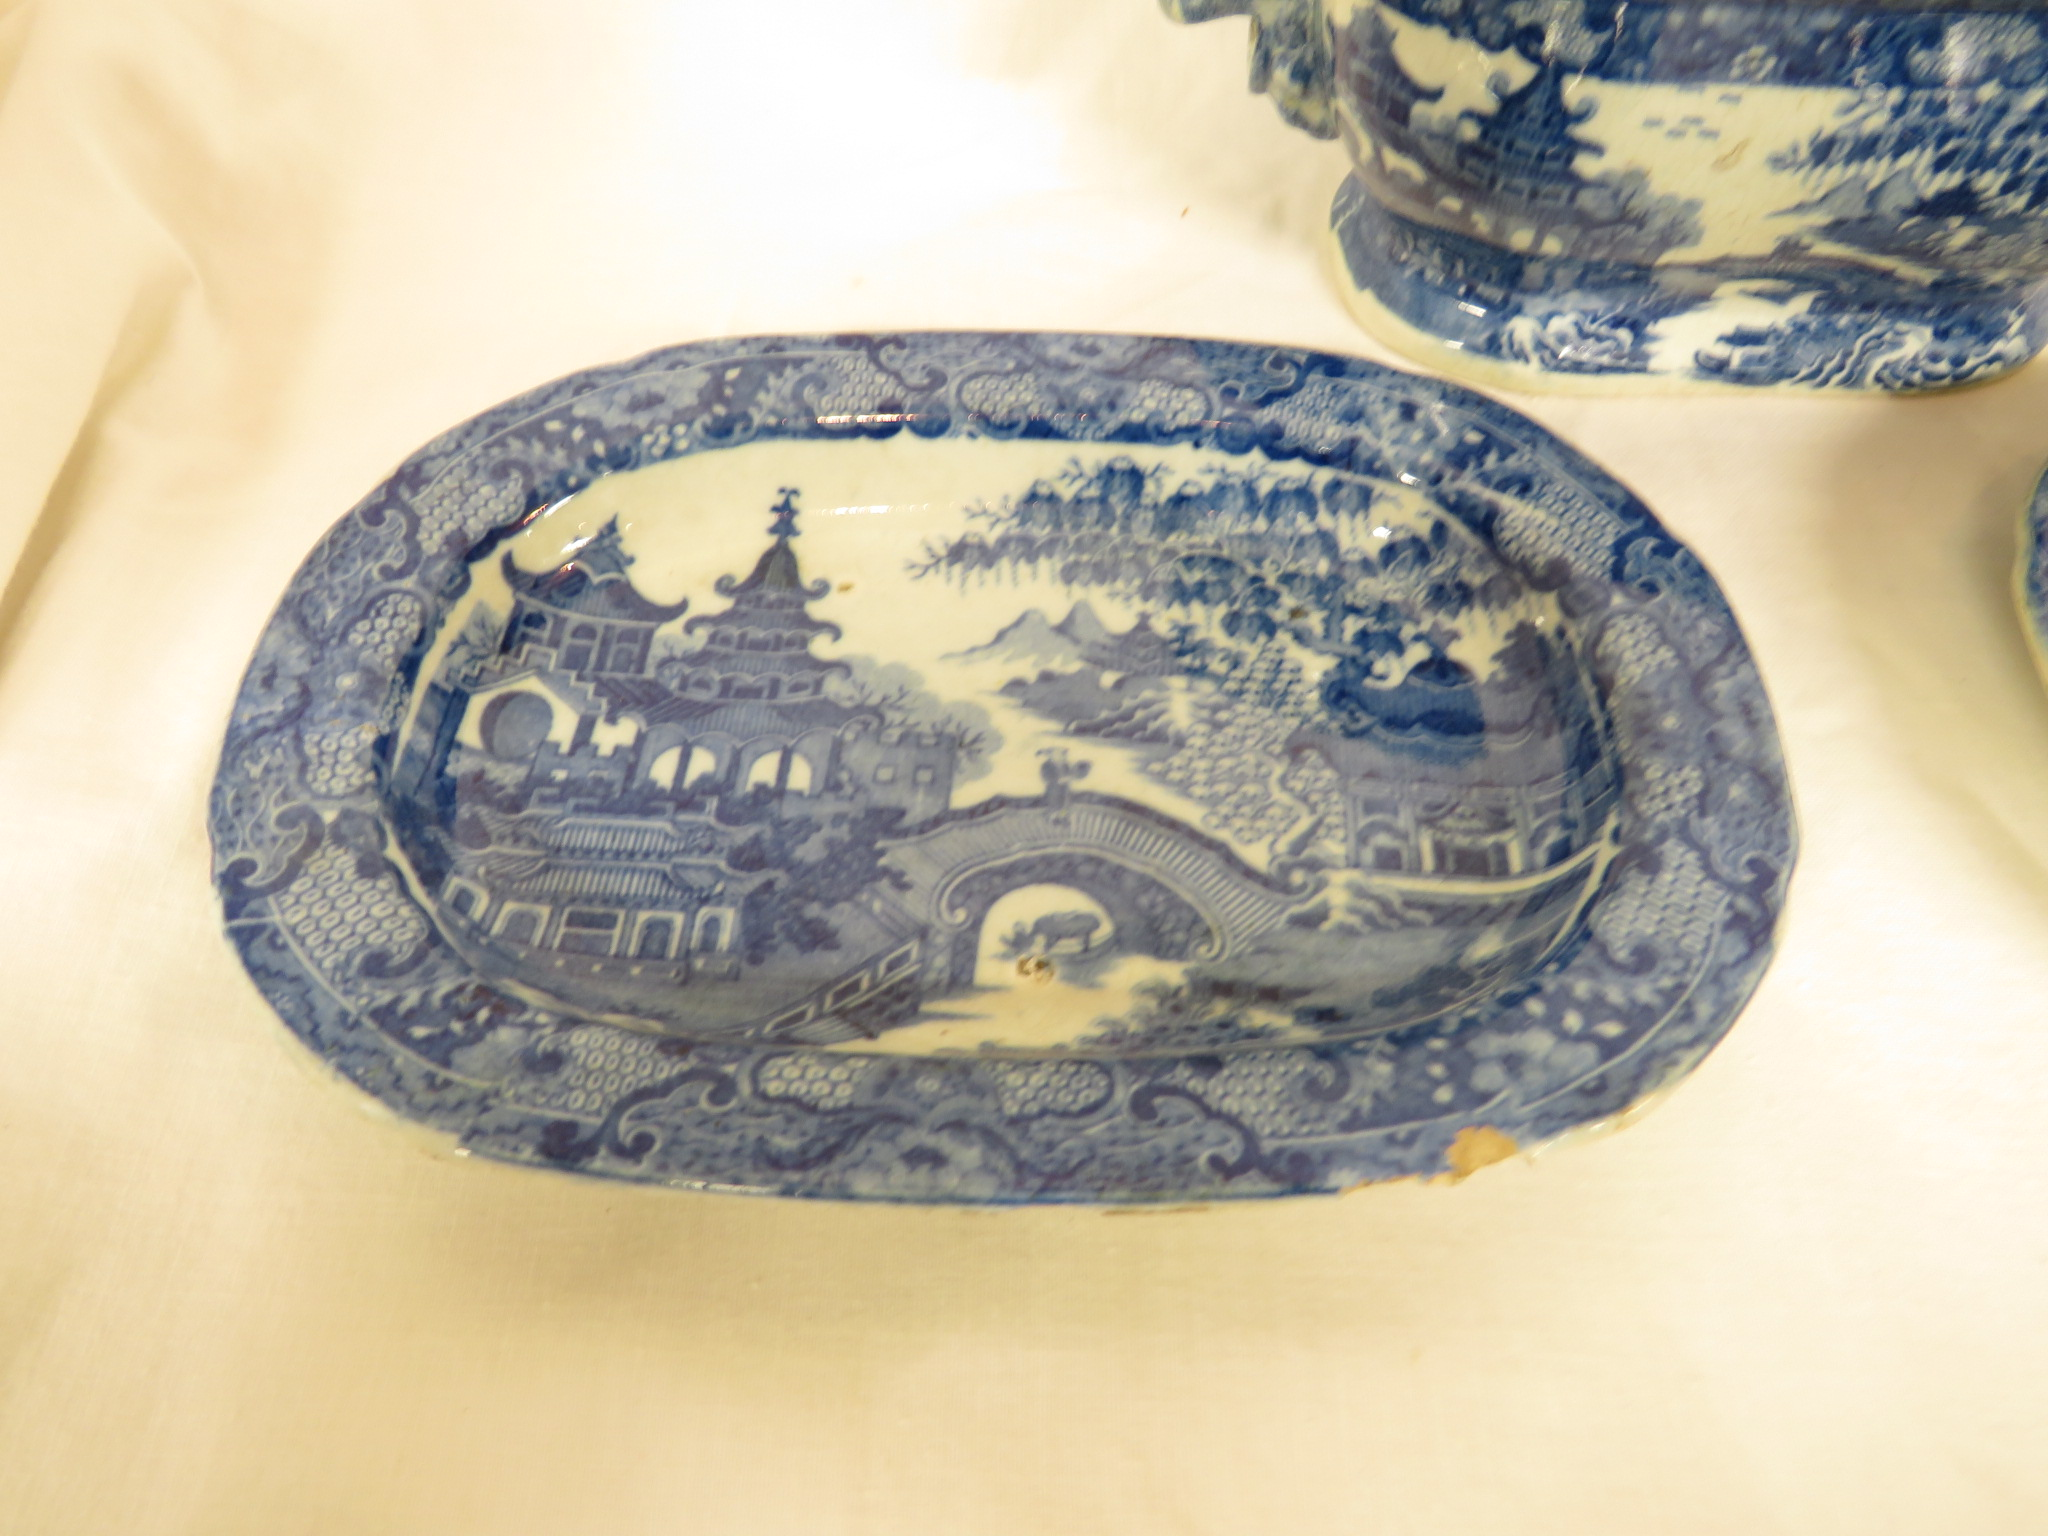 Lot 86 - 19th century pottery sauce tureen and ladle with two oblong dishes transfer decorated in blue and